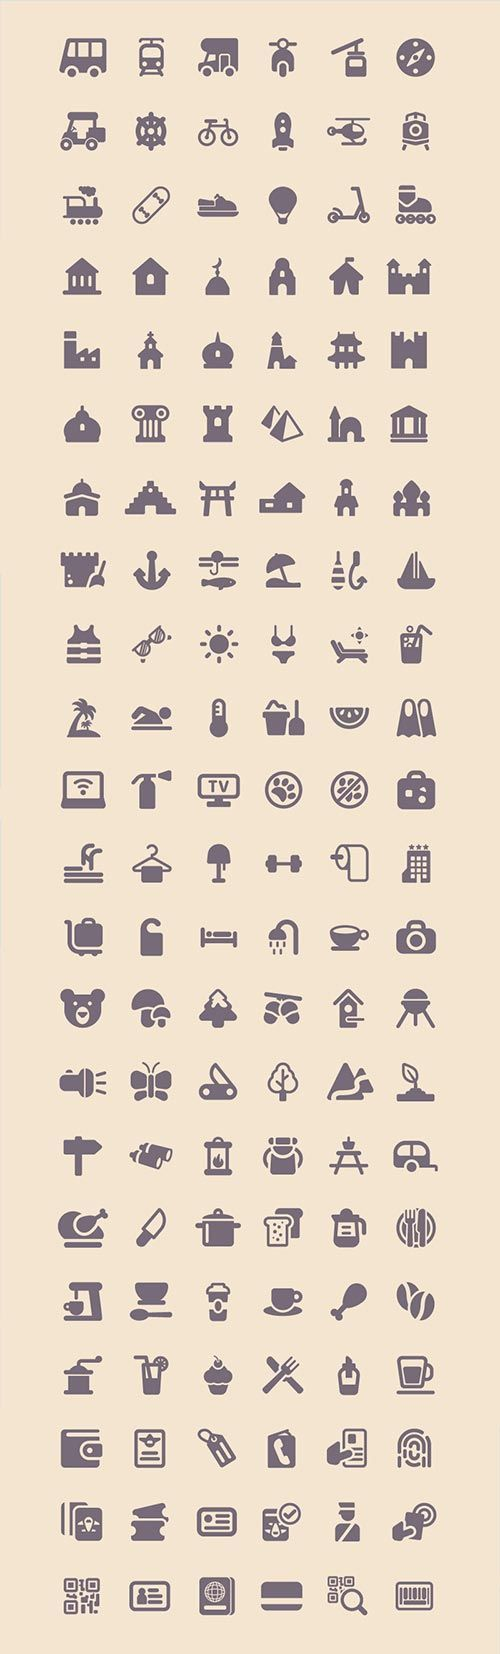 Freebie: Tourism & Travel Icon Set (100 Icons, PNG, SVG) (2.3 MB)…